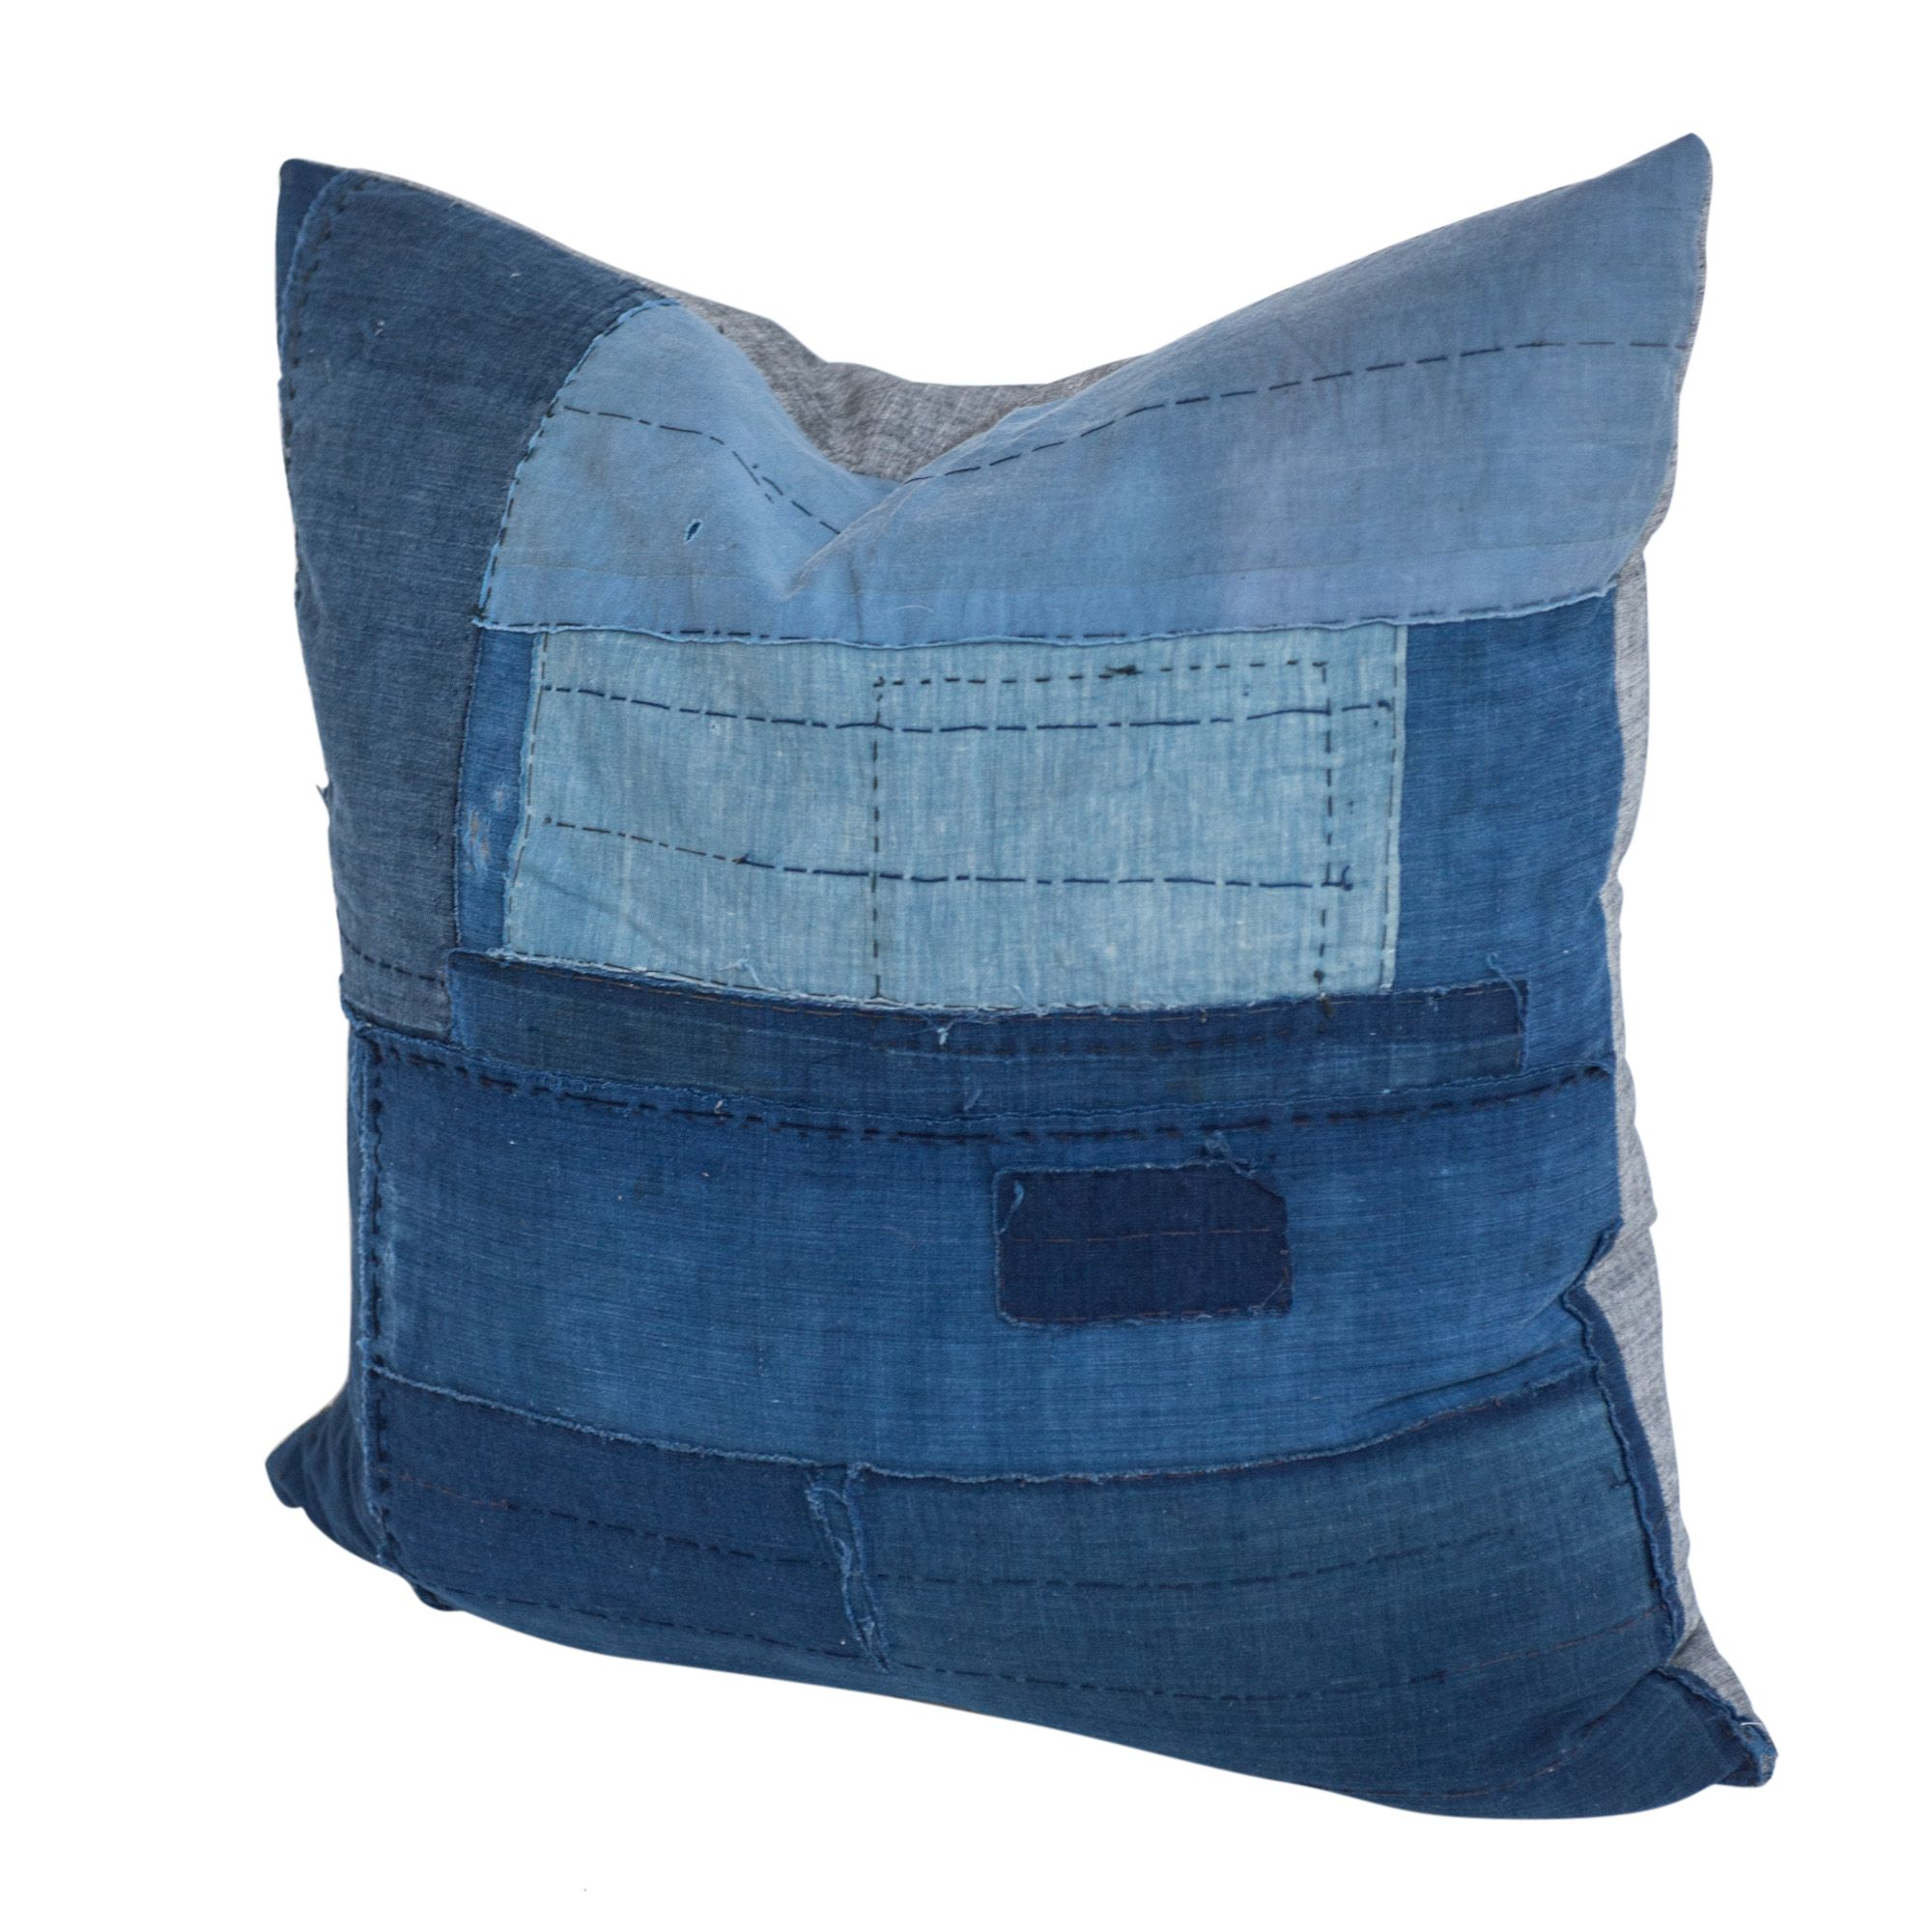 patchwork+indigo+pillow at Found Home